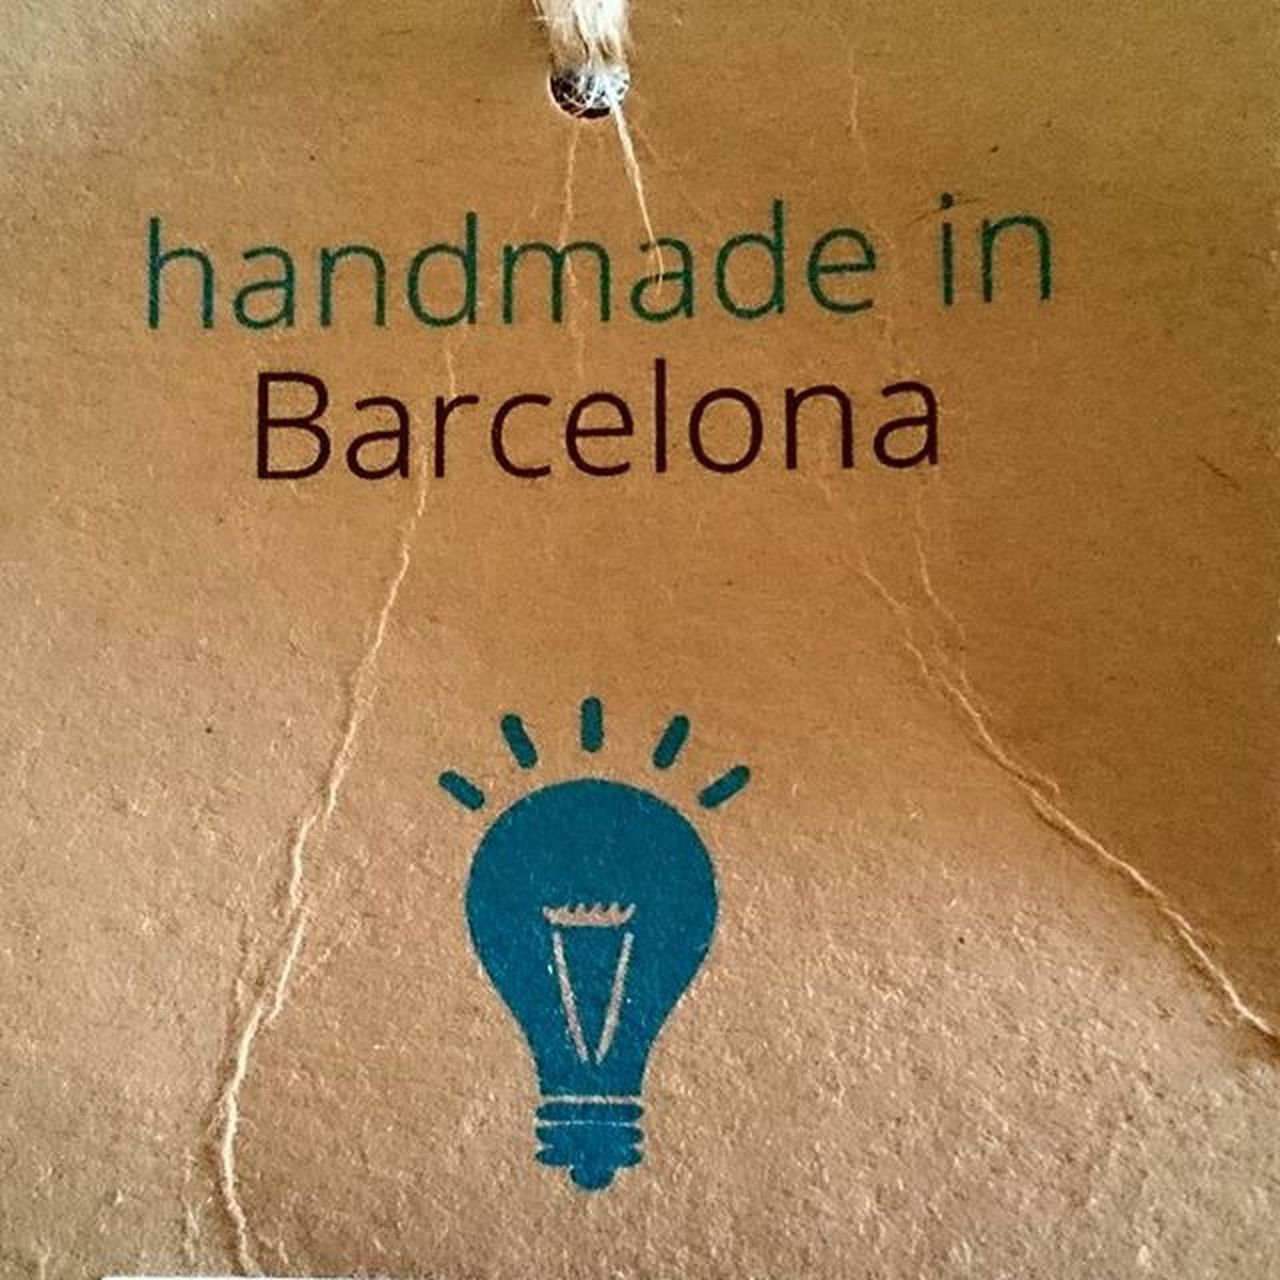 Made in BCN. Made In Barcelona MADE IN  Barcelona Catalonia Handmade Handmade In Barcelona